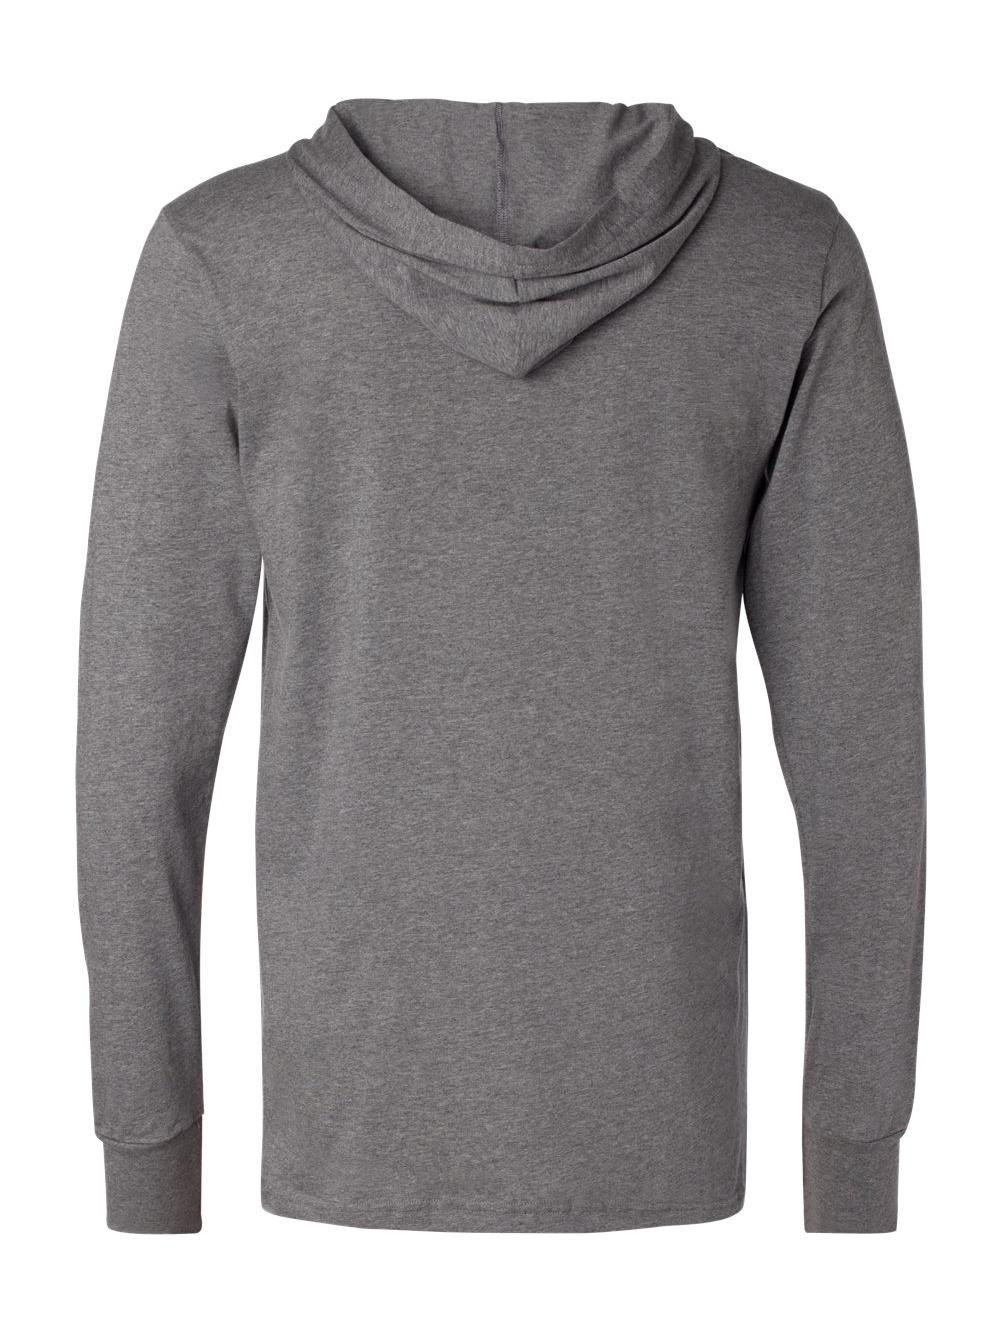 Bella-Canvas-Unisex-Long-Sleeve-Jersey-Hooded-Tee-3512 thumbnail 13